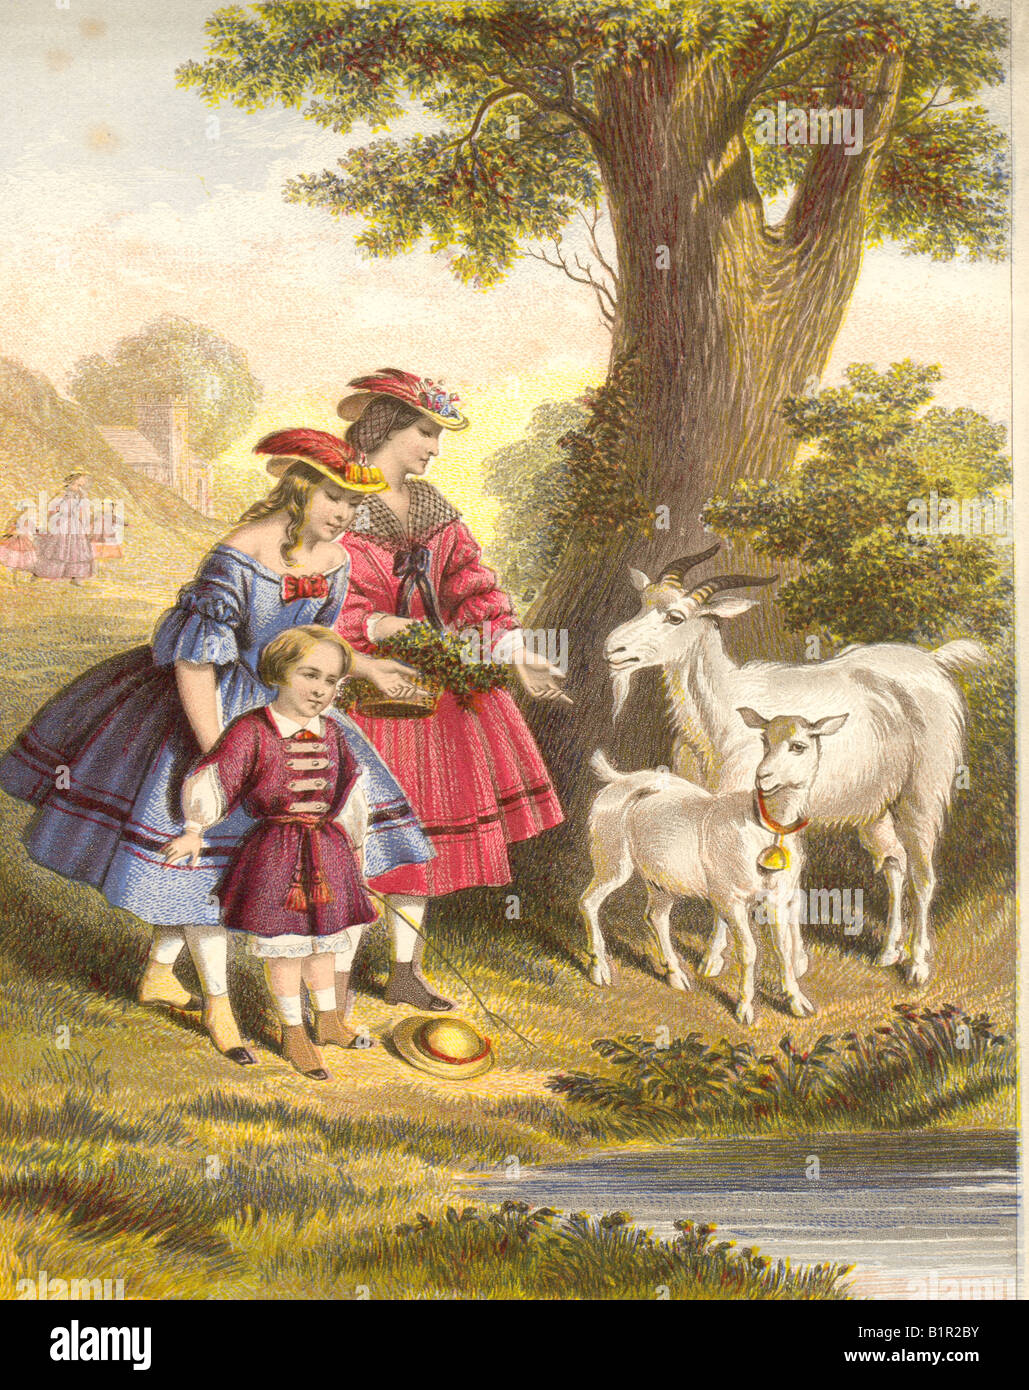 Chromolithographed Victorian print of country outing showing children talking to nanny goat and kid circa 1860 - Stock Image